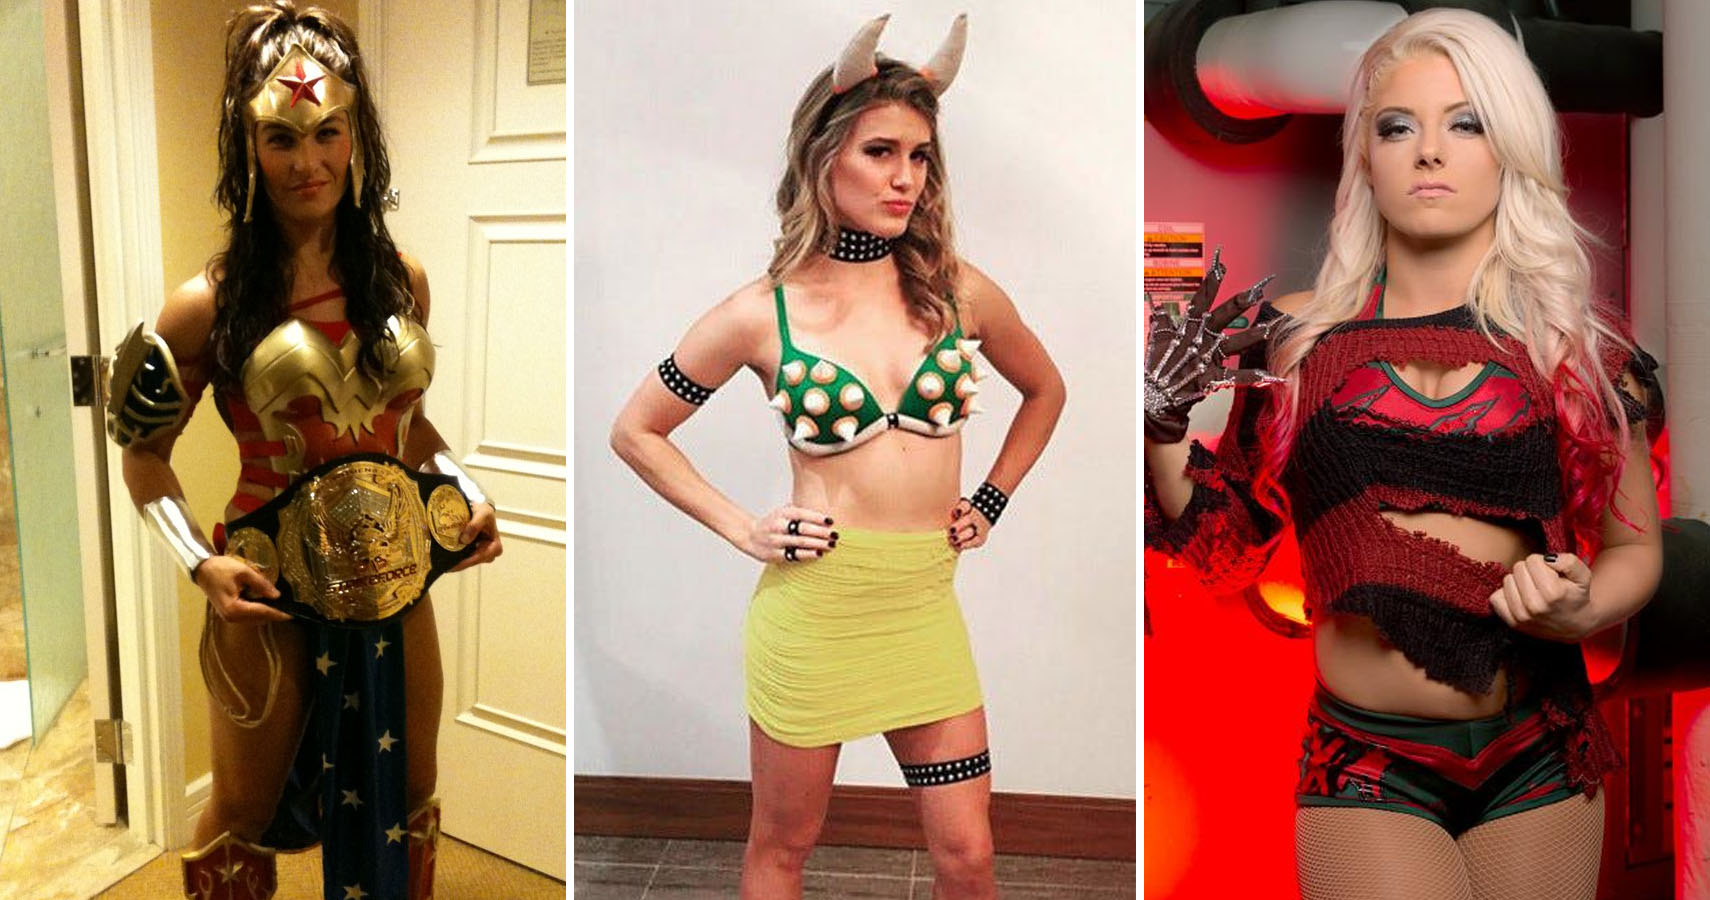 Photos Of Female Athletes In Halloween Costumes